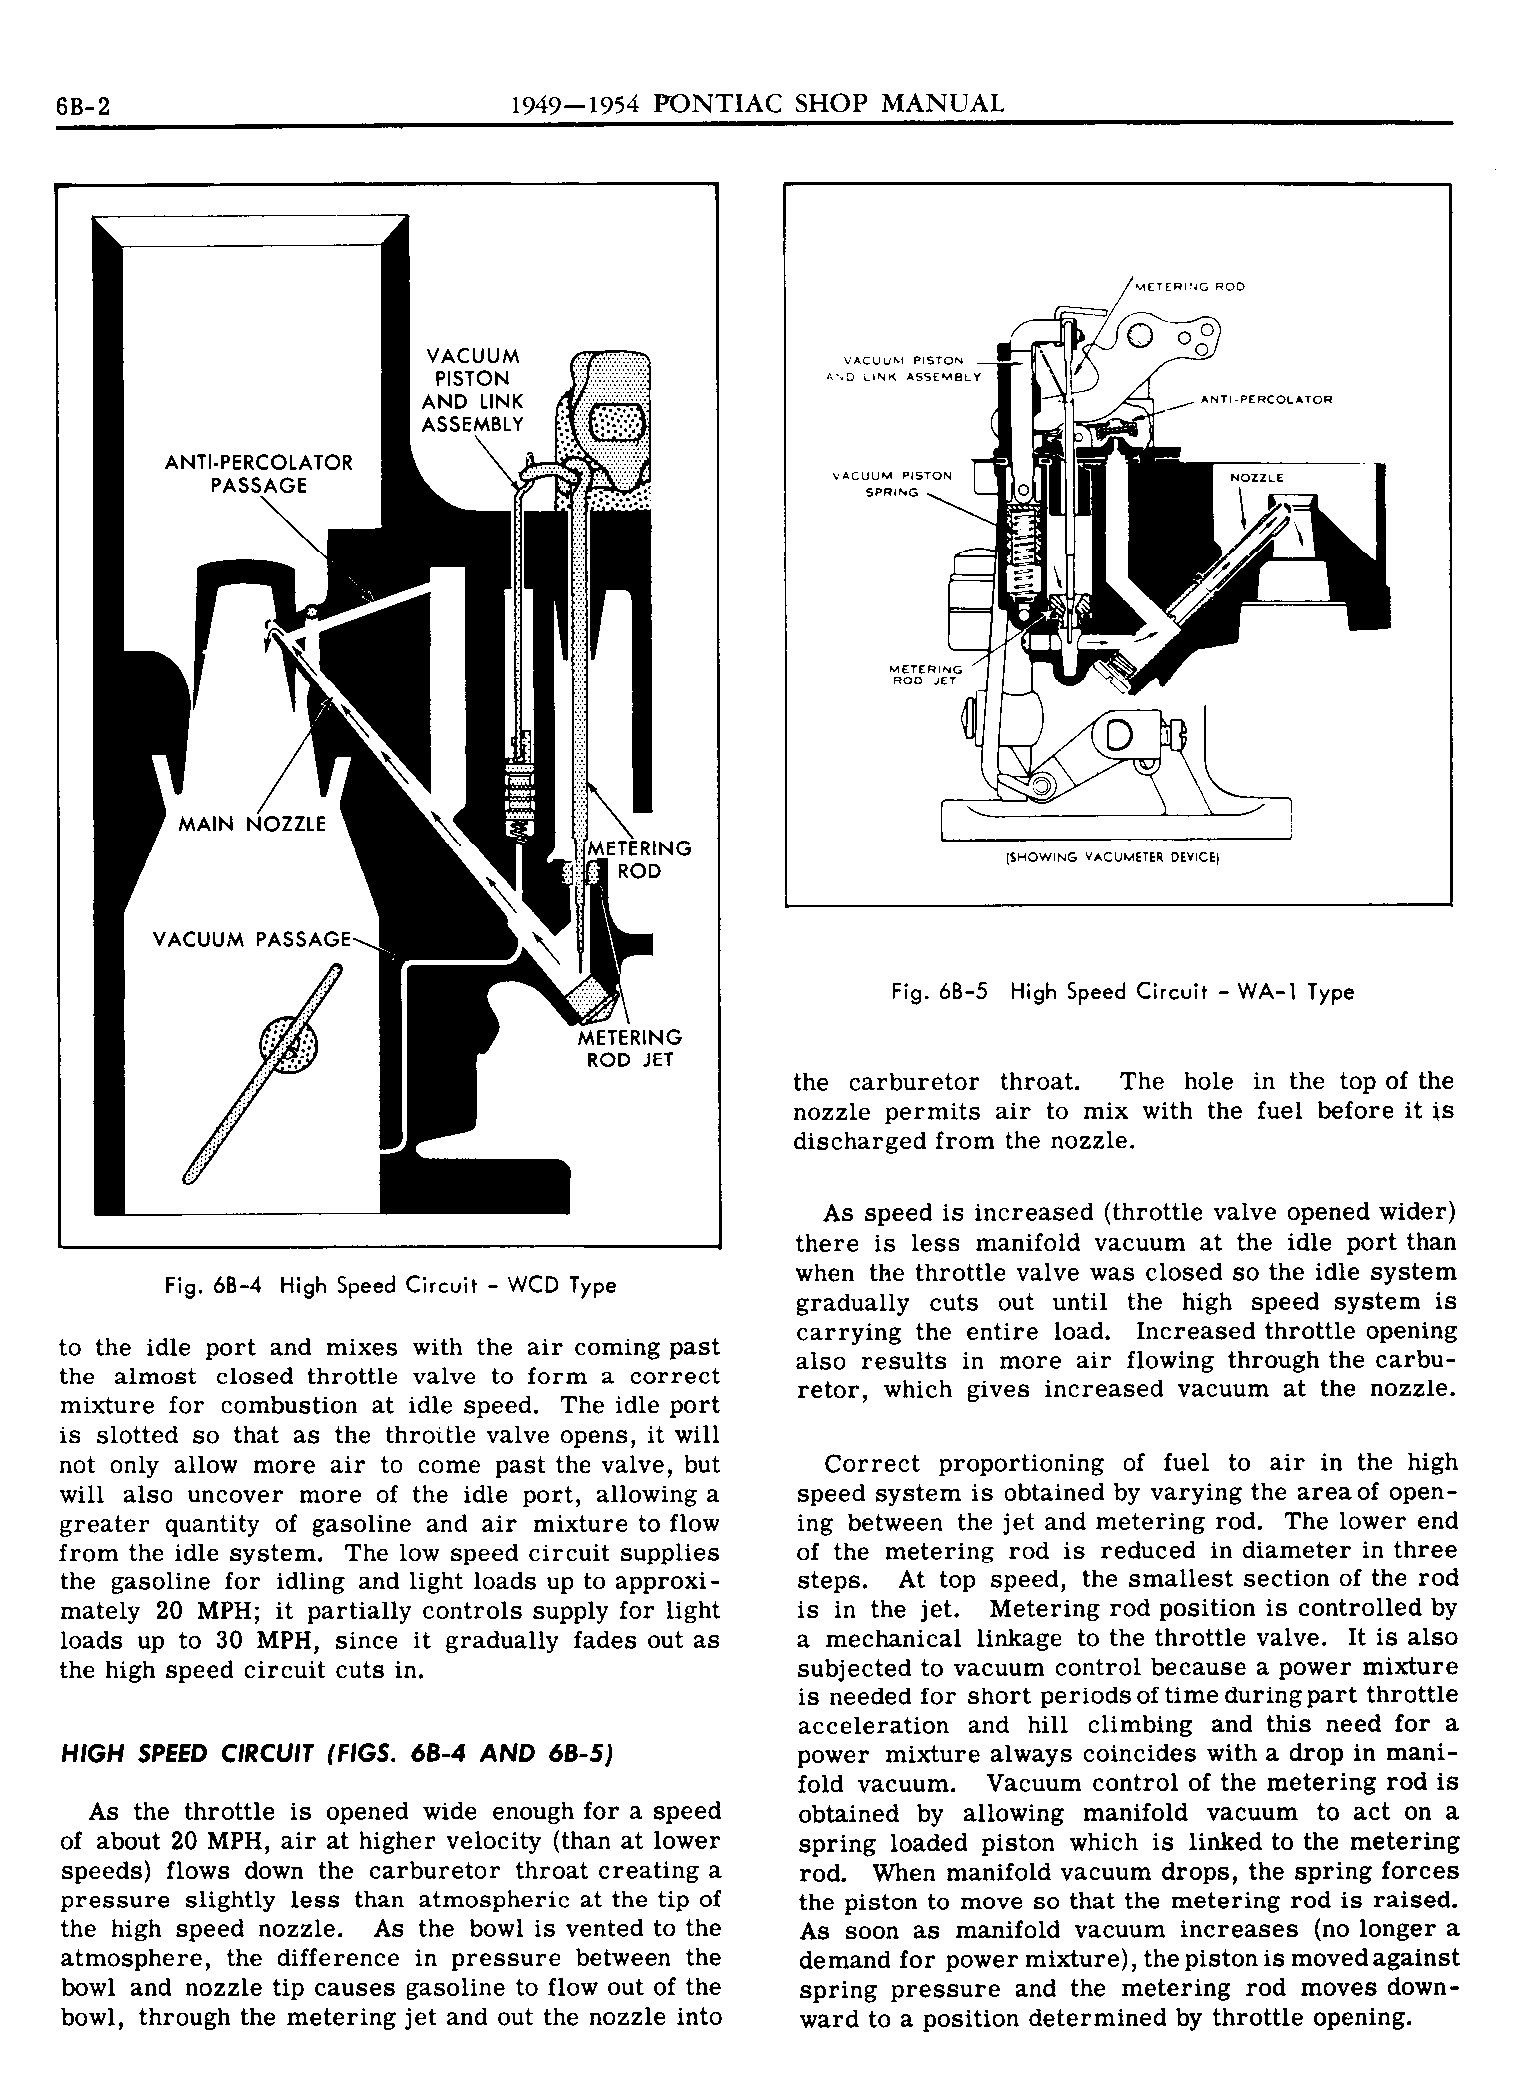 1949 Pontiac Shop Manual- Engine Fuel Page 2 of 42